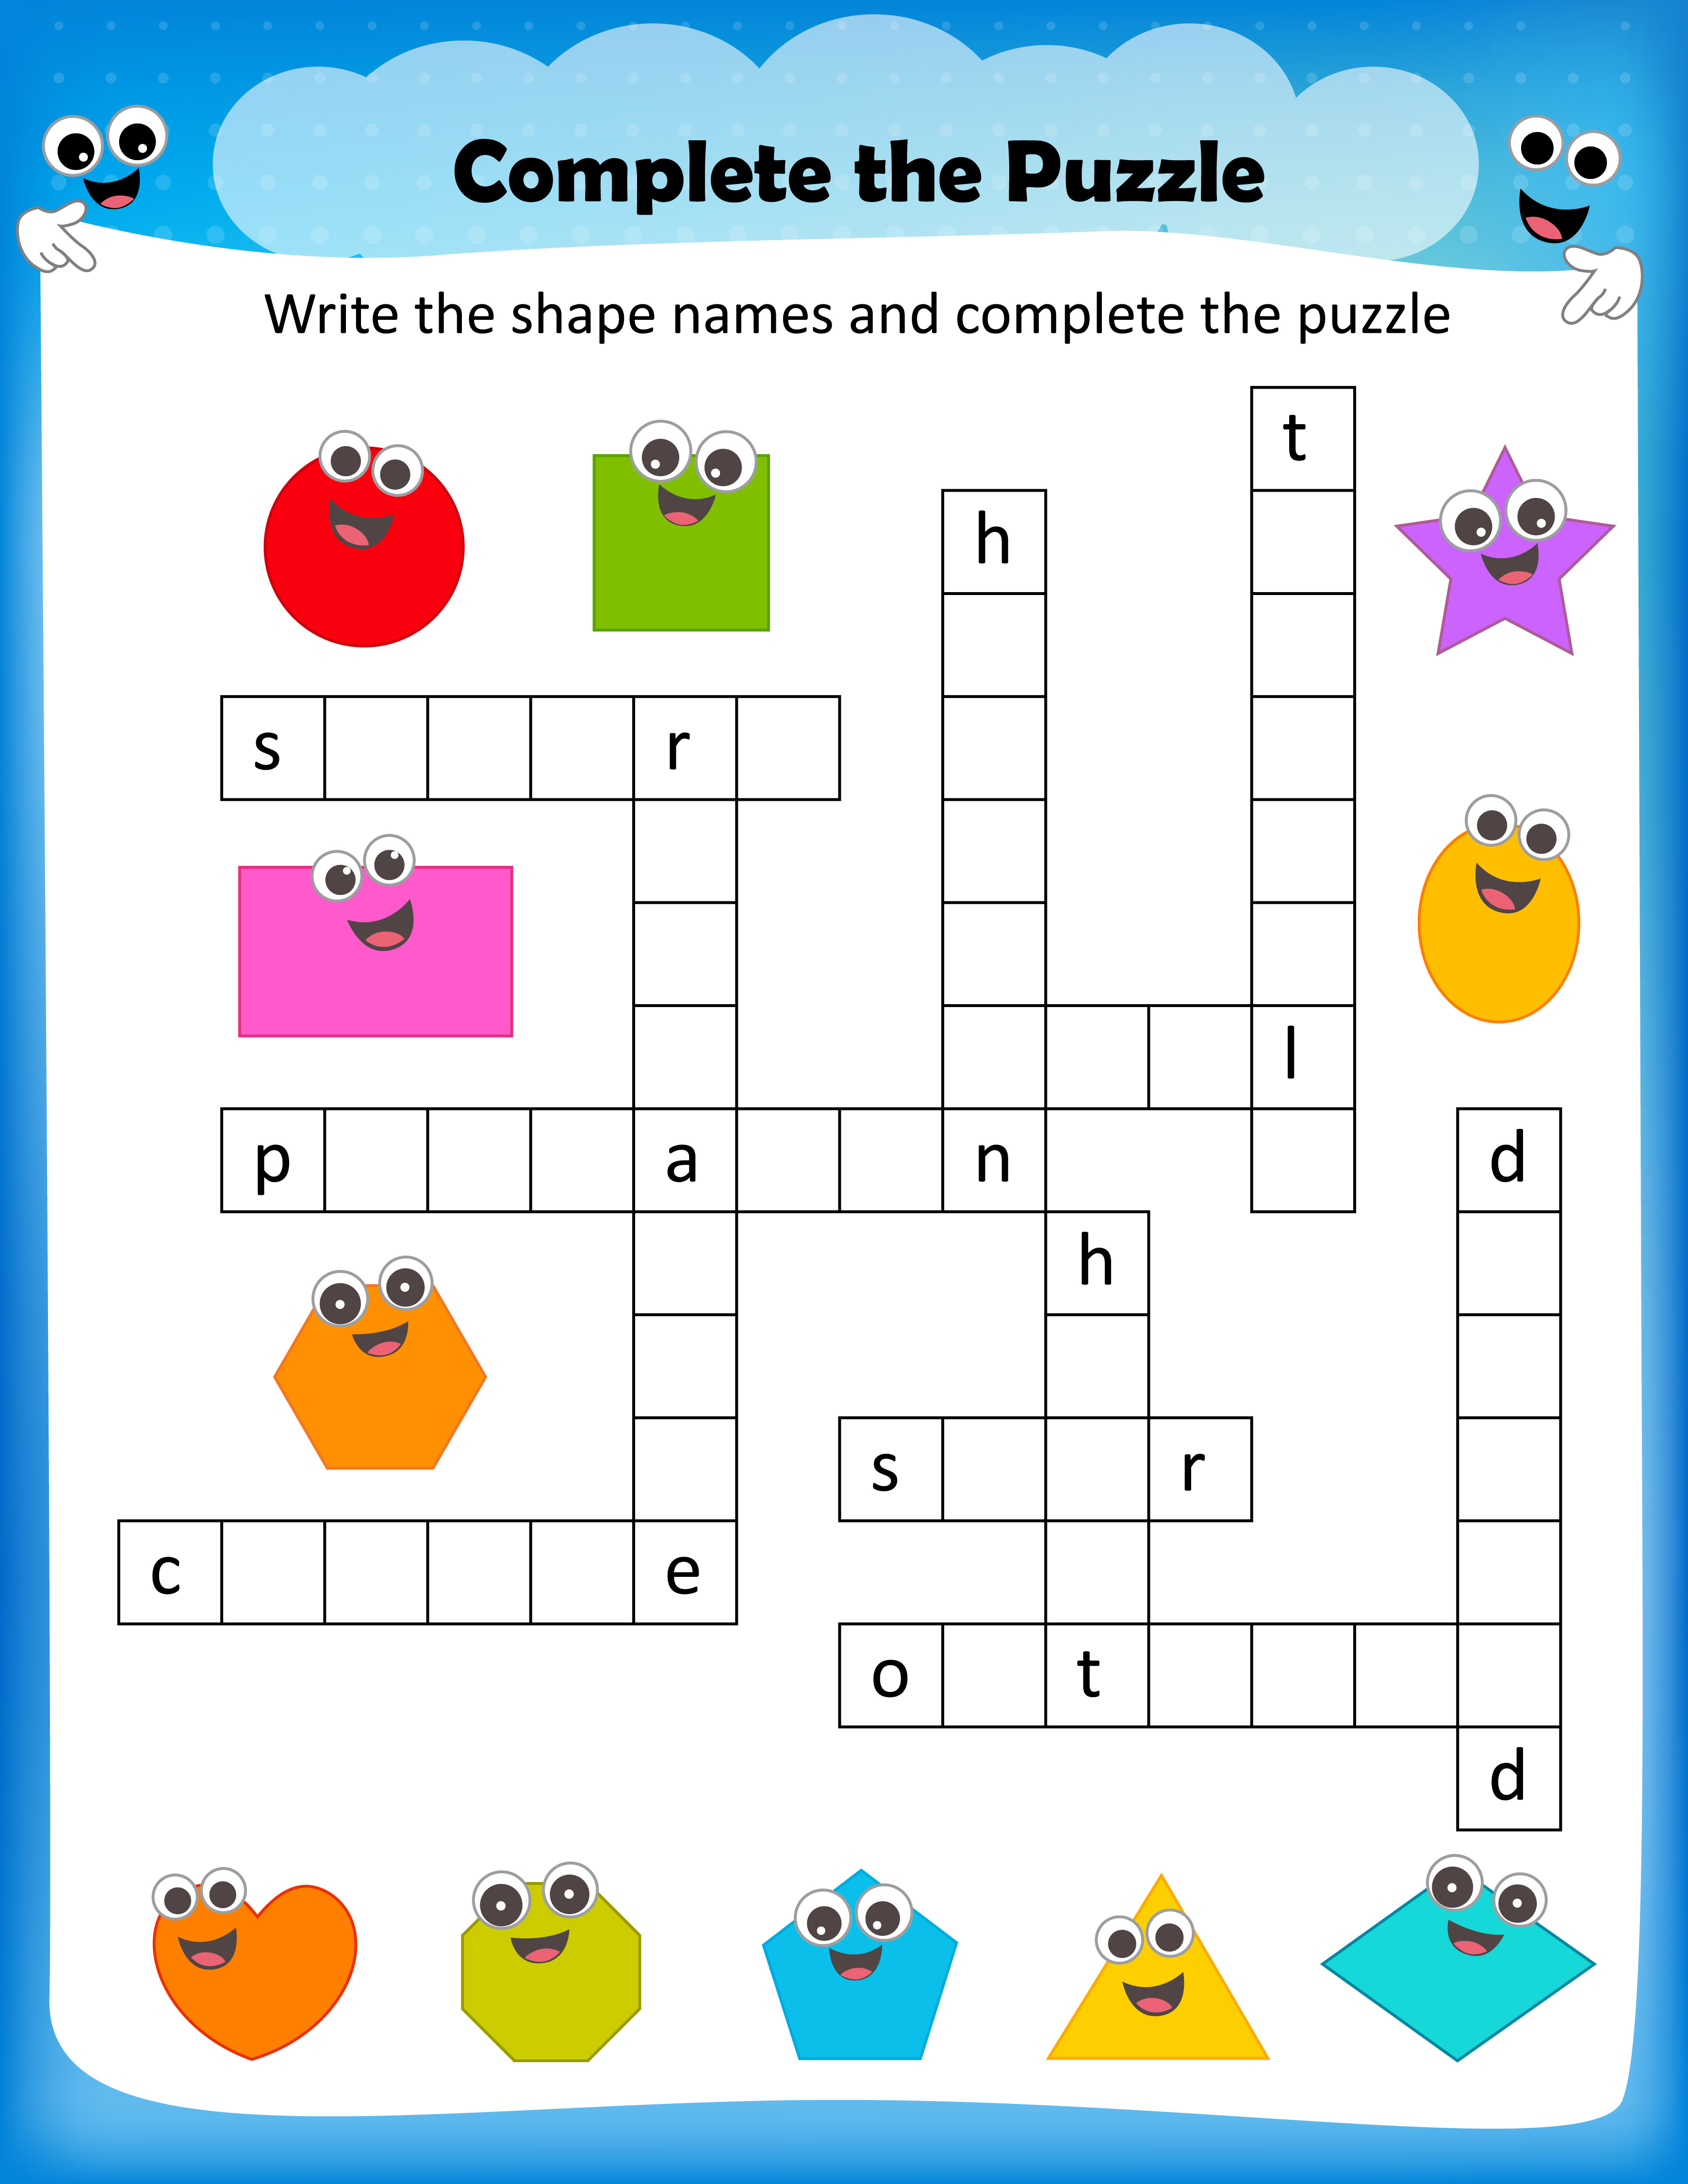 Free Printable Crosswords With Top 10 Benefits For Our Kids - Free Printable Crossword Puzzles Health